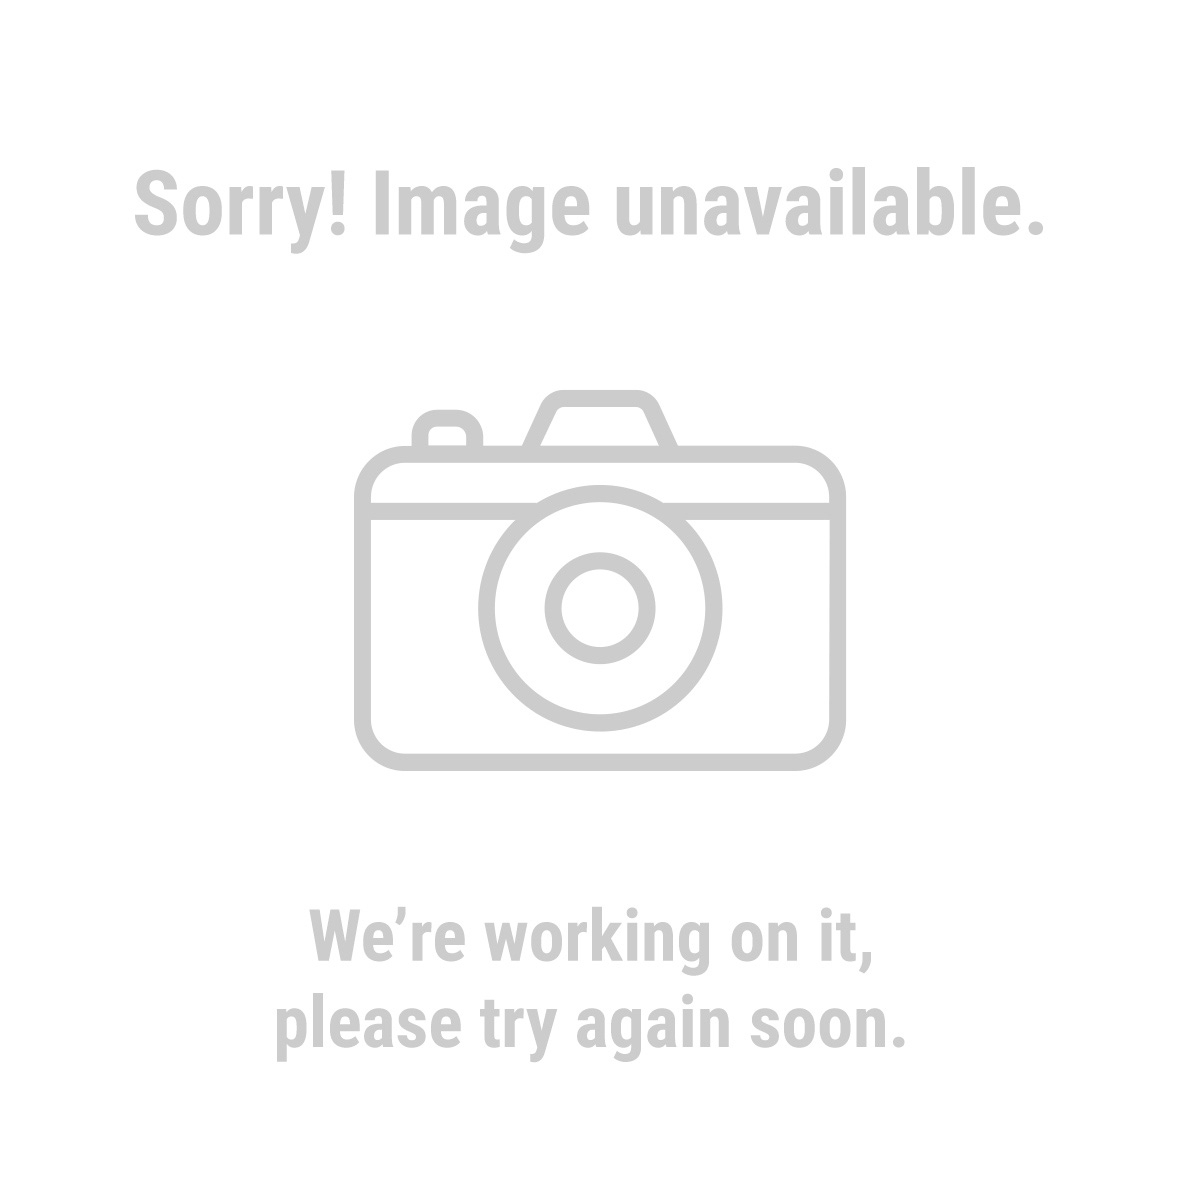 HFT 61577 50 Piece Trash Bags - 33 gal.